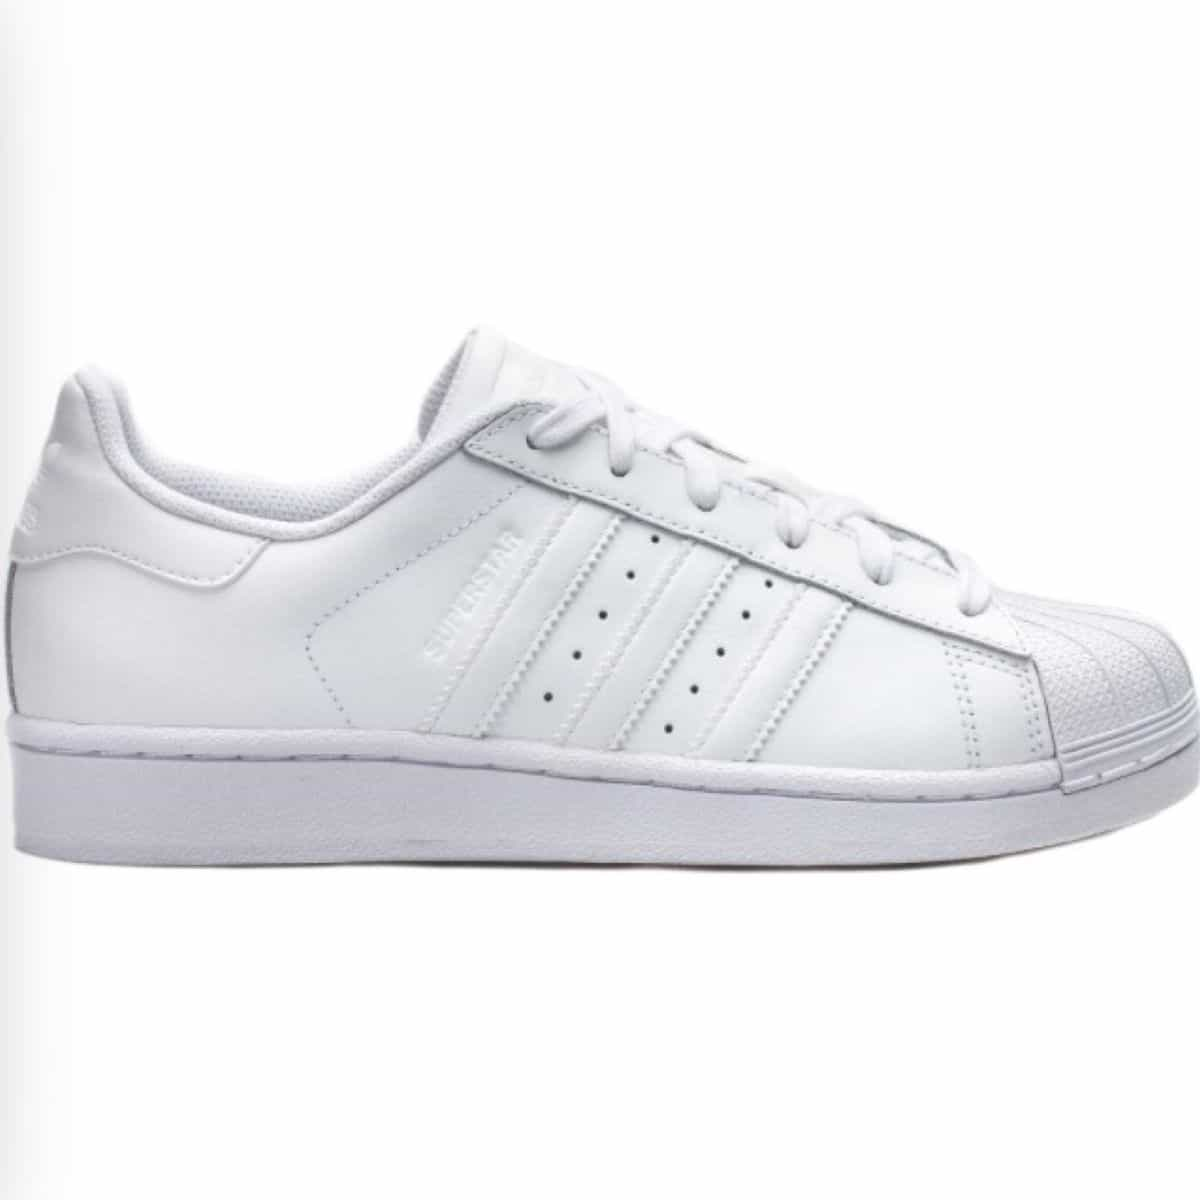 ADIDASI ADIDAS SUPERSTAR FOUNDATION - B23641